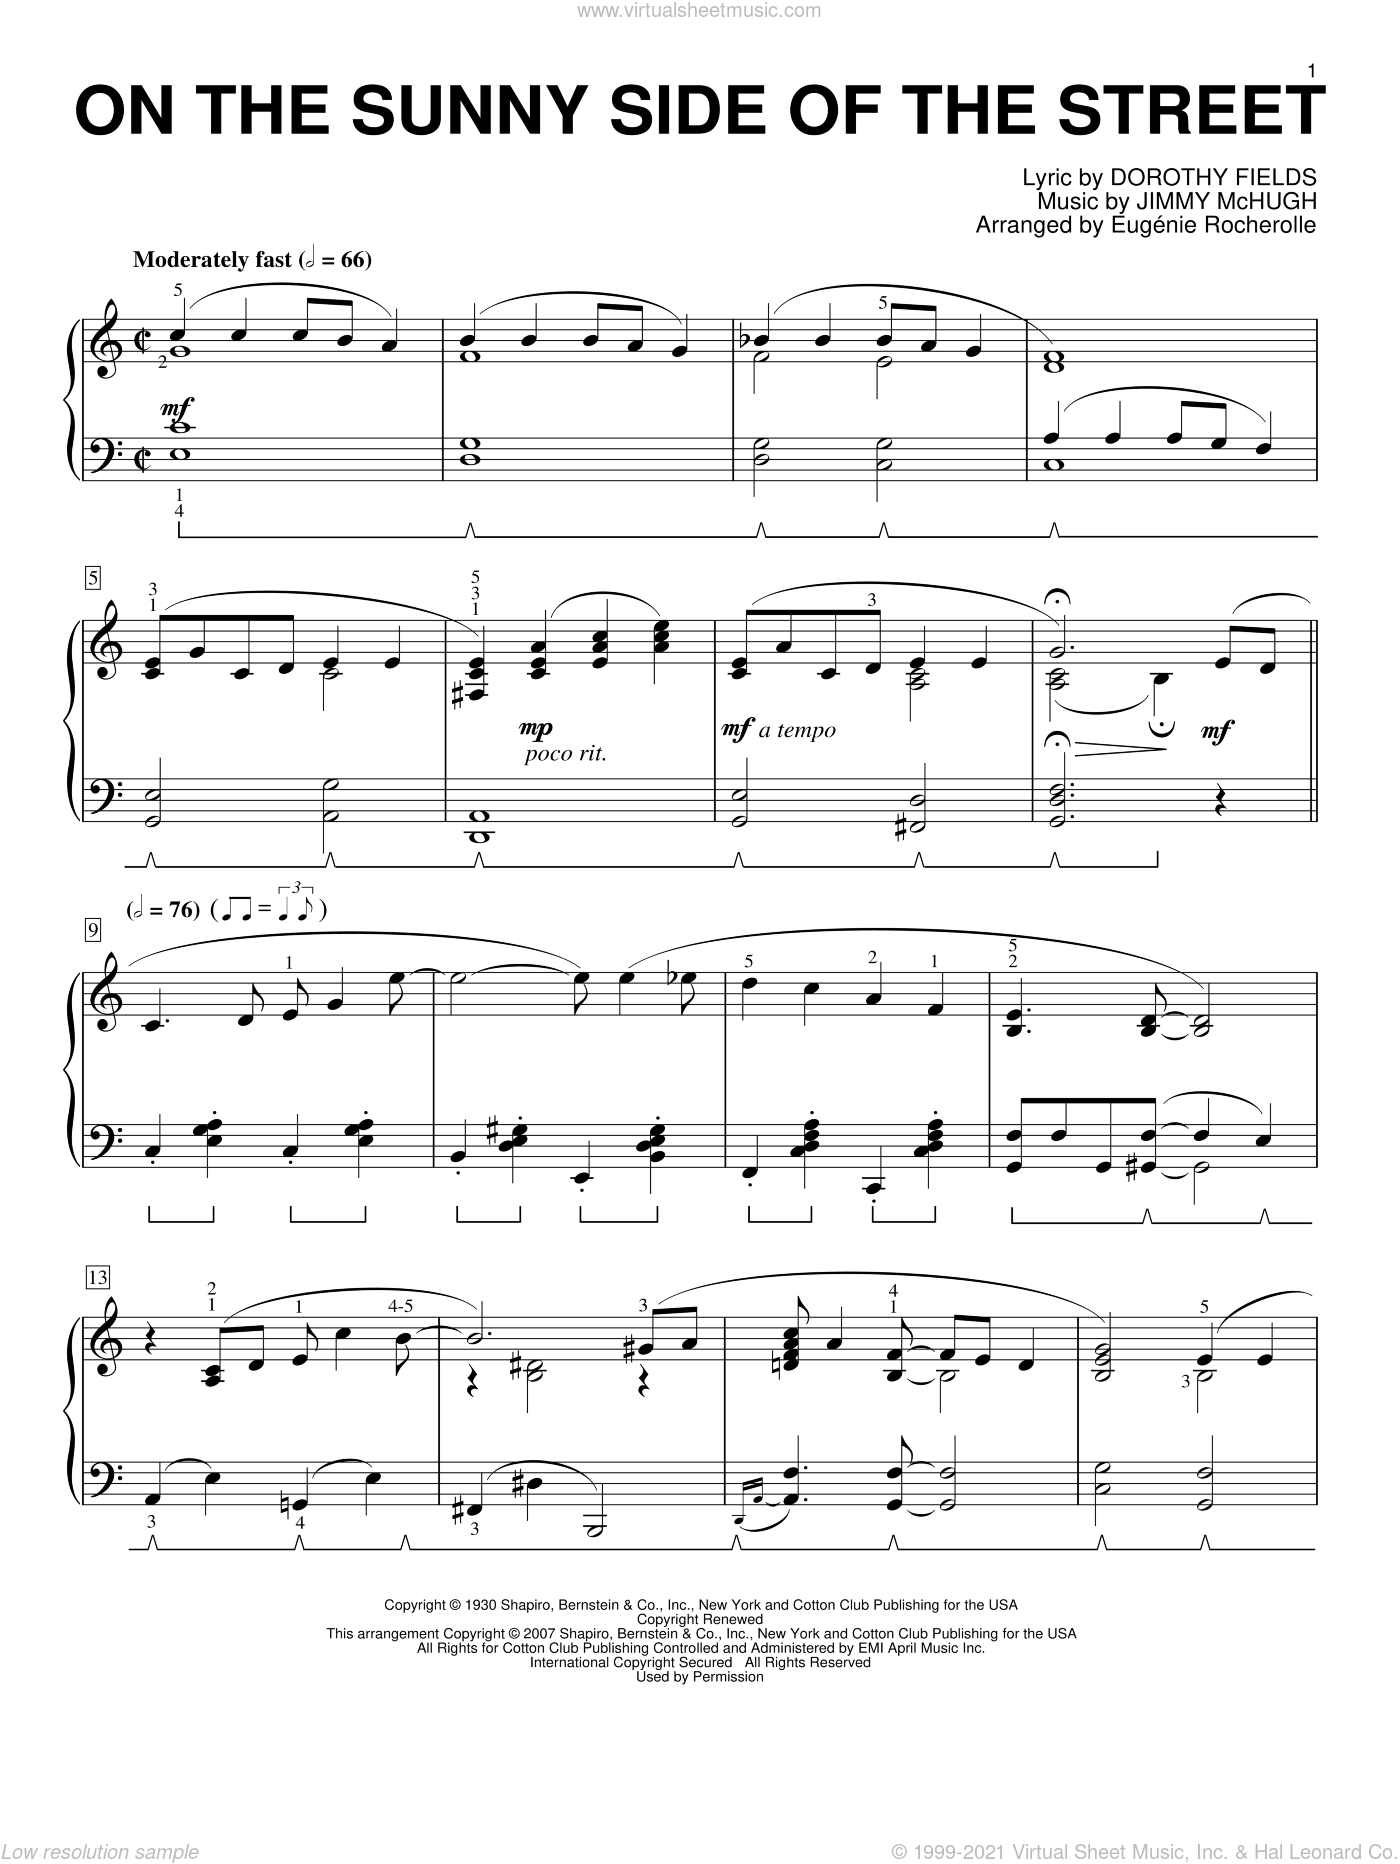 On The Sunny Side Of The Street sheet music for piano solo by Jimmy McHugh